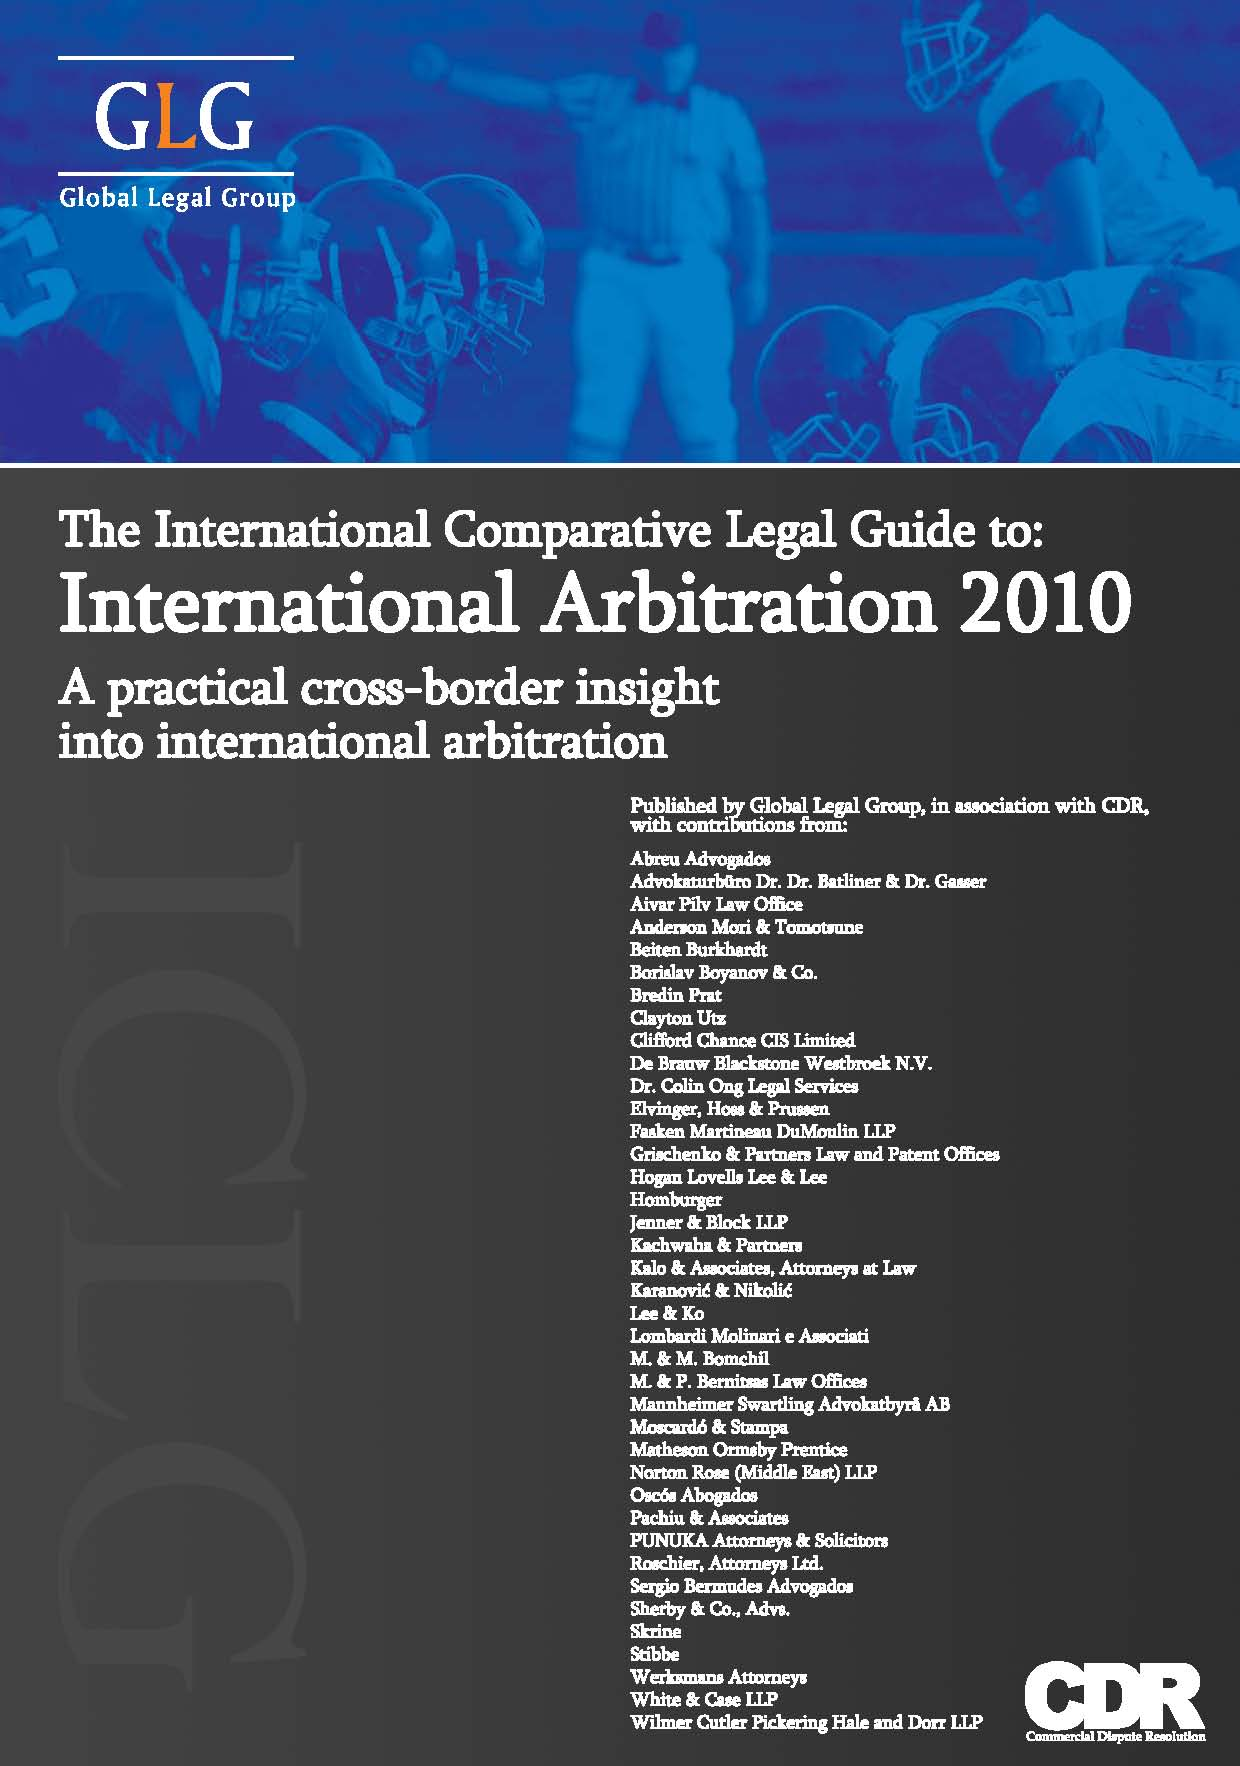 the-international-comparative-legal-guide-to-international-arbitration-2010